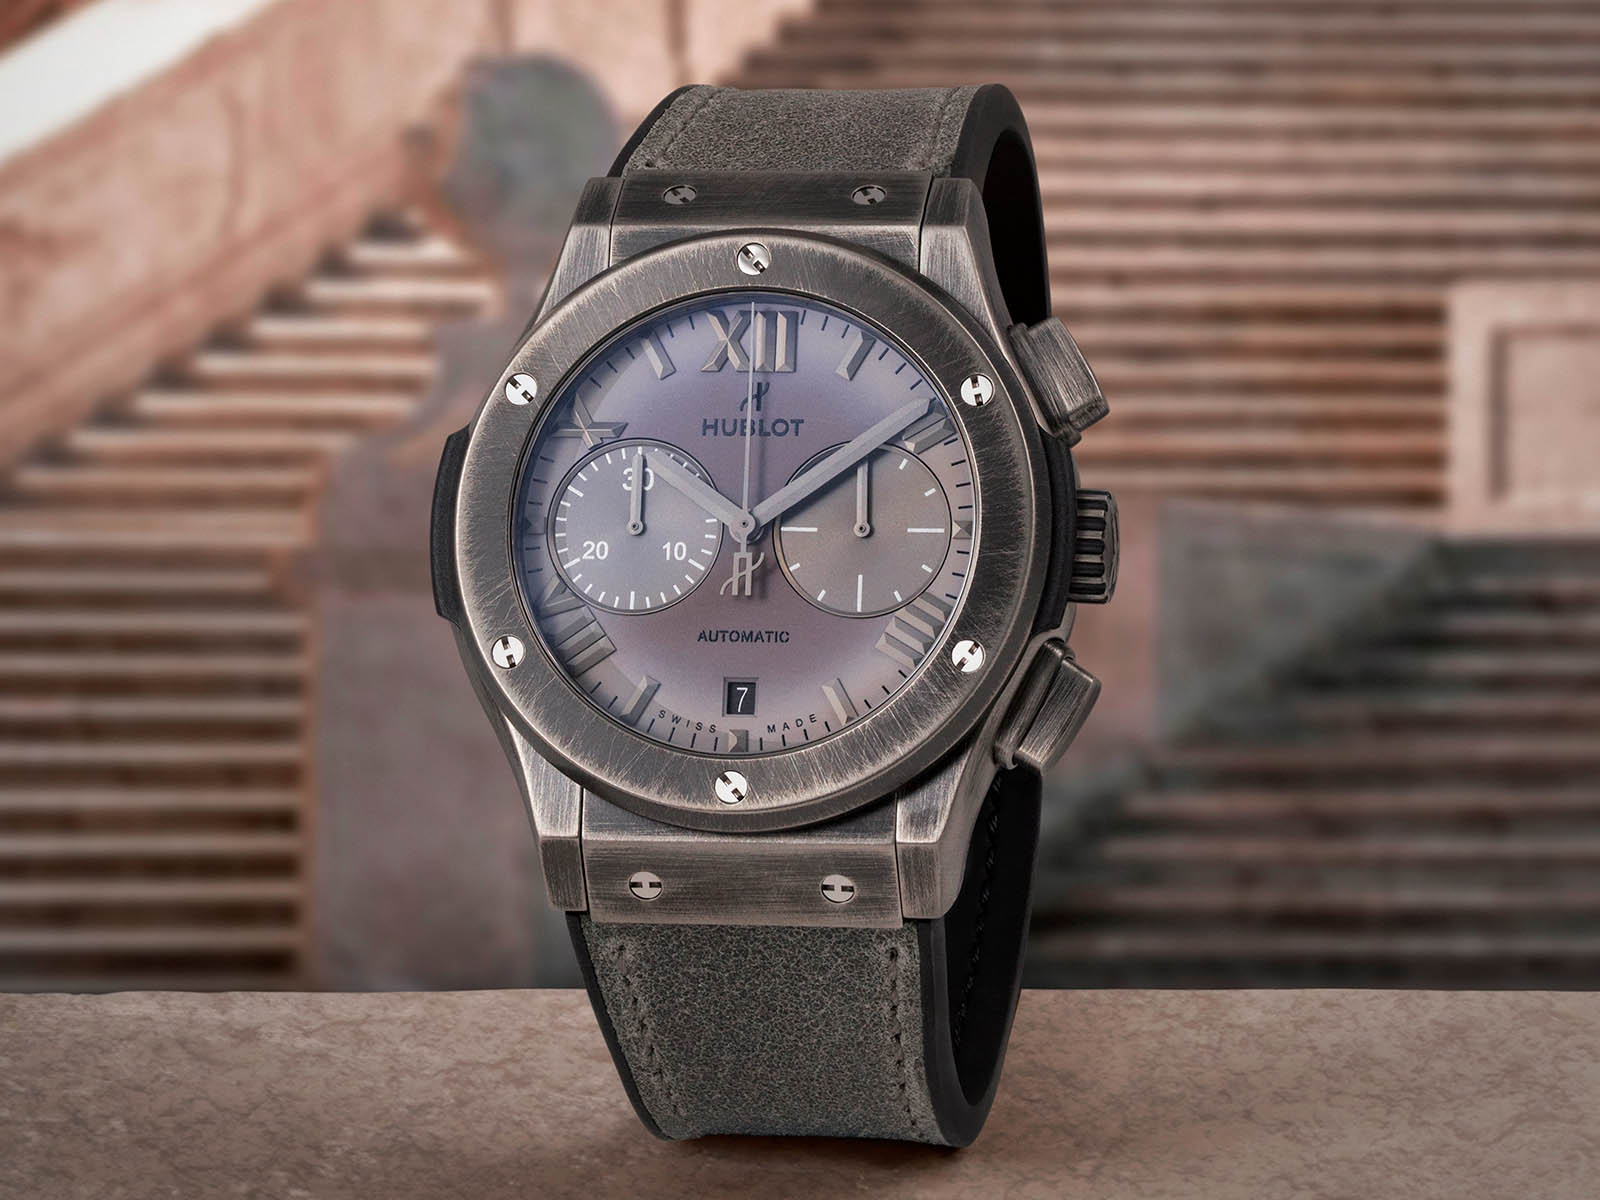 521-nx-4610-vr-rom20-hublot-classic-fusion-chronograph-special-edition-boutique-roma-3.jpg